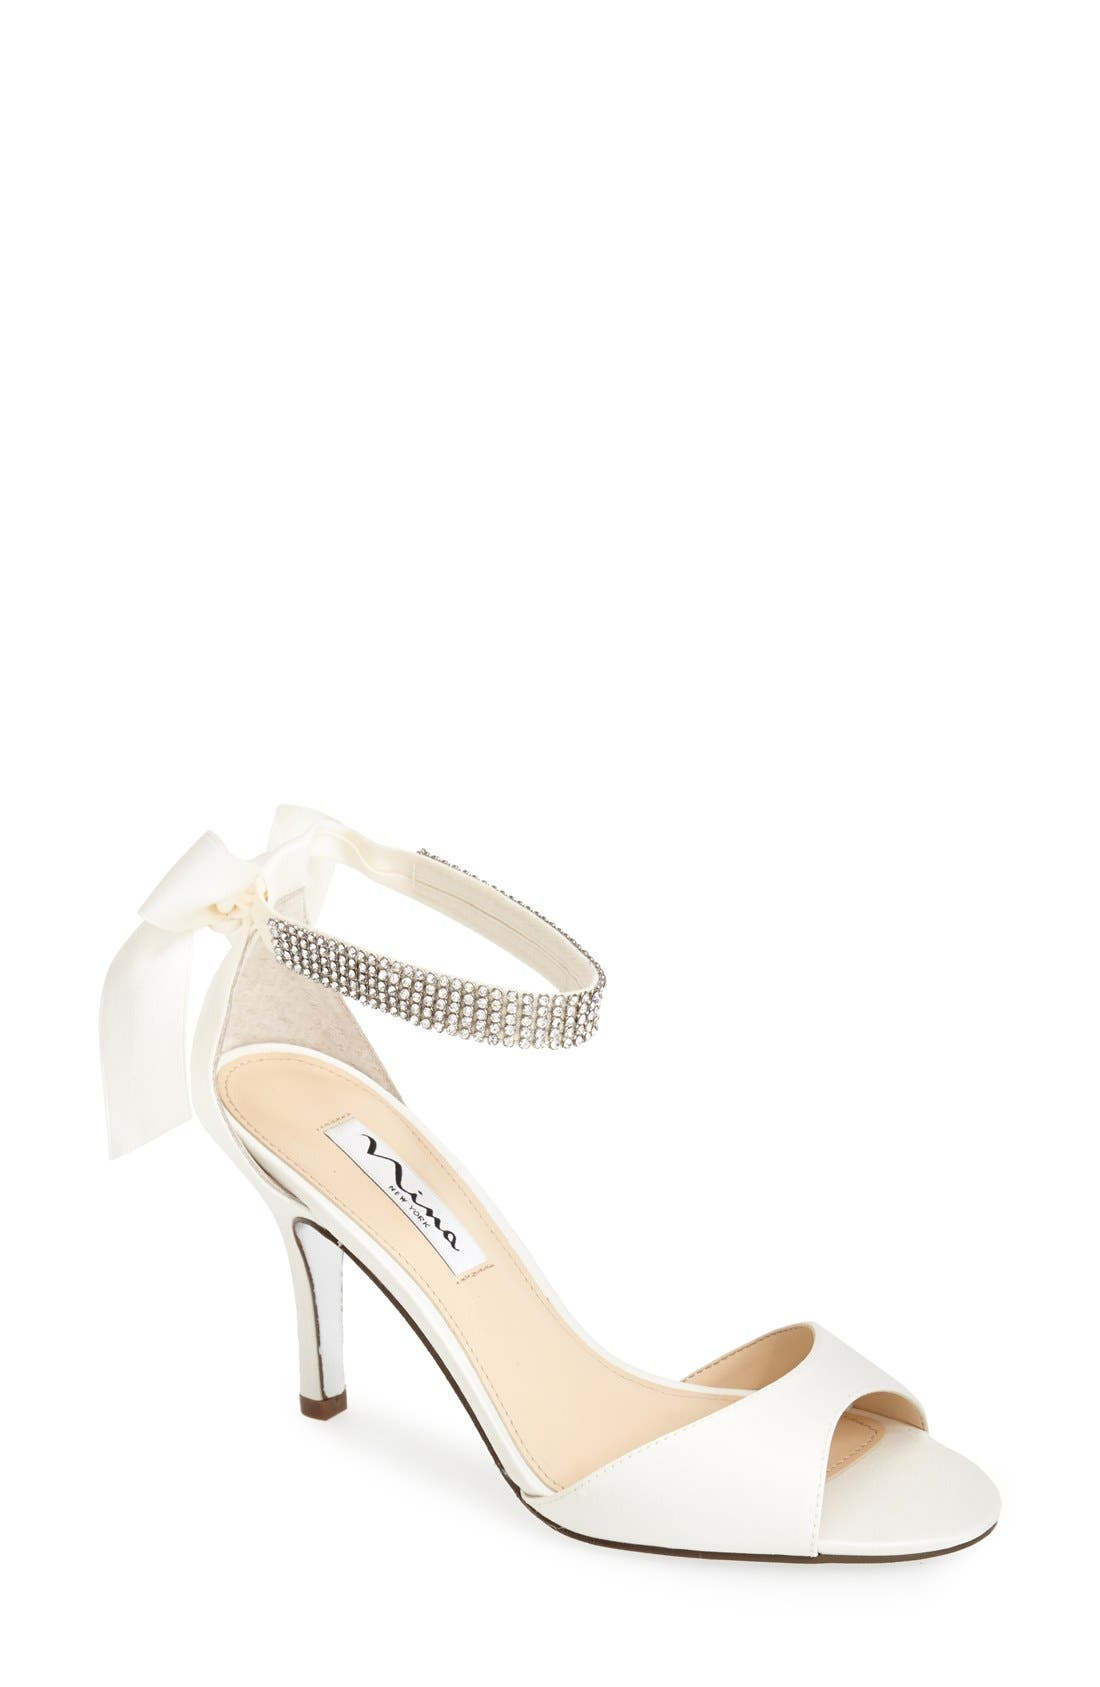 'Vinnie' Crystal Embellished Ankle Strap Sandal,                             Main thumbnail 1, color,                             IVORY